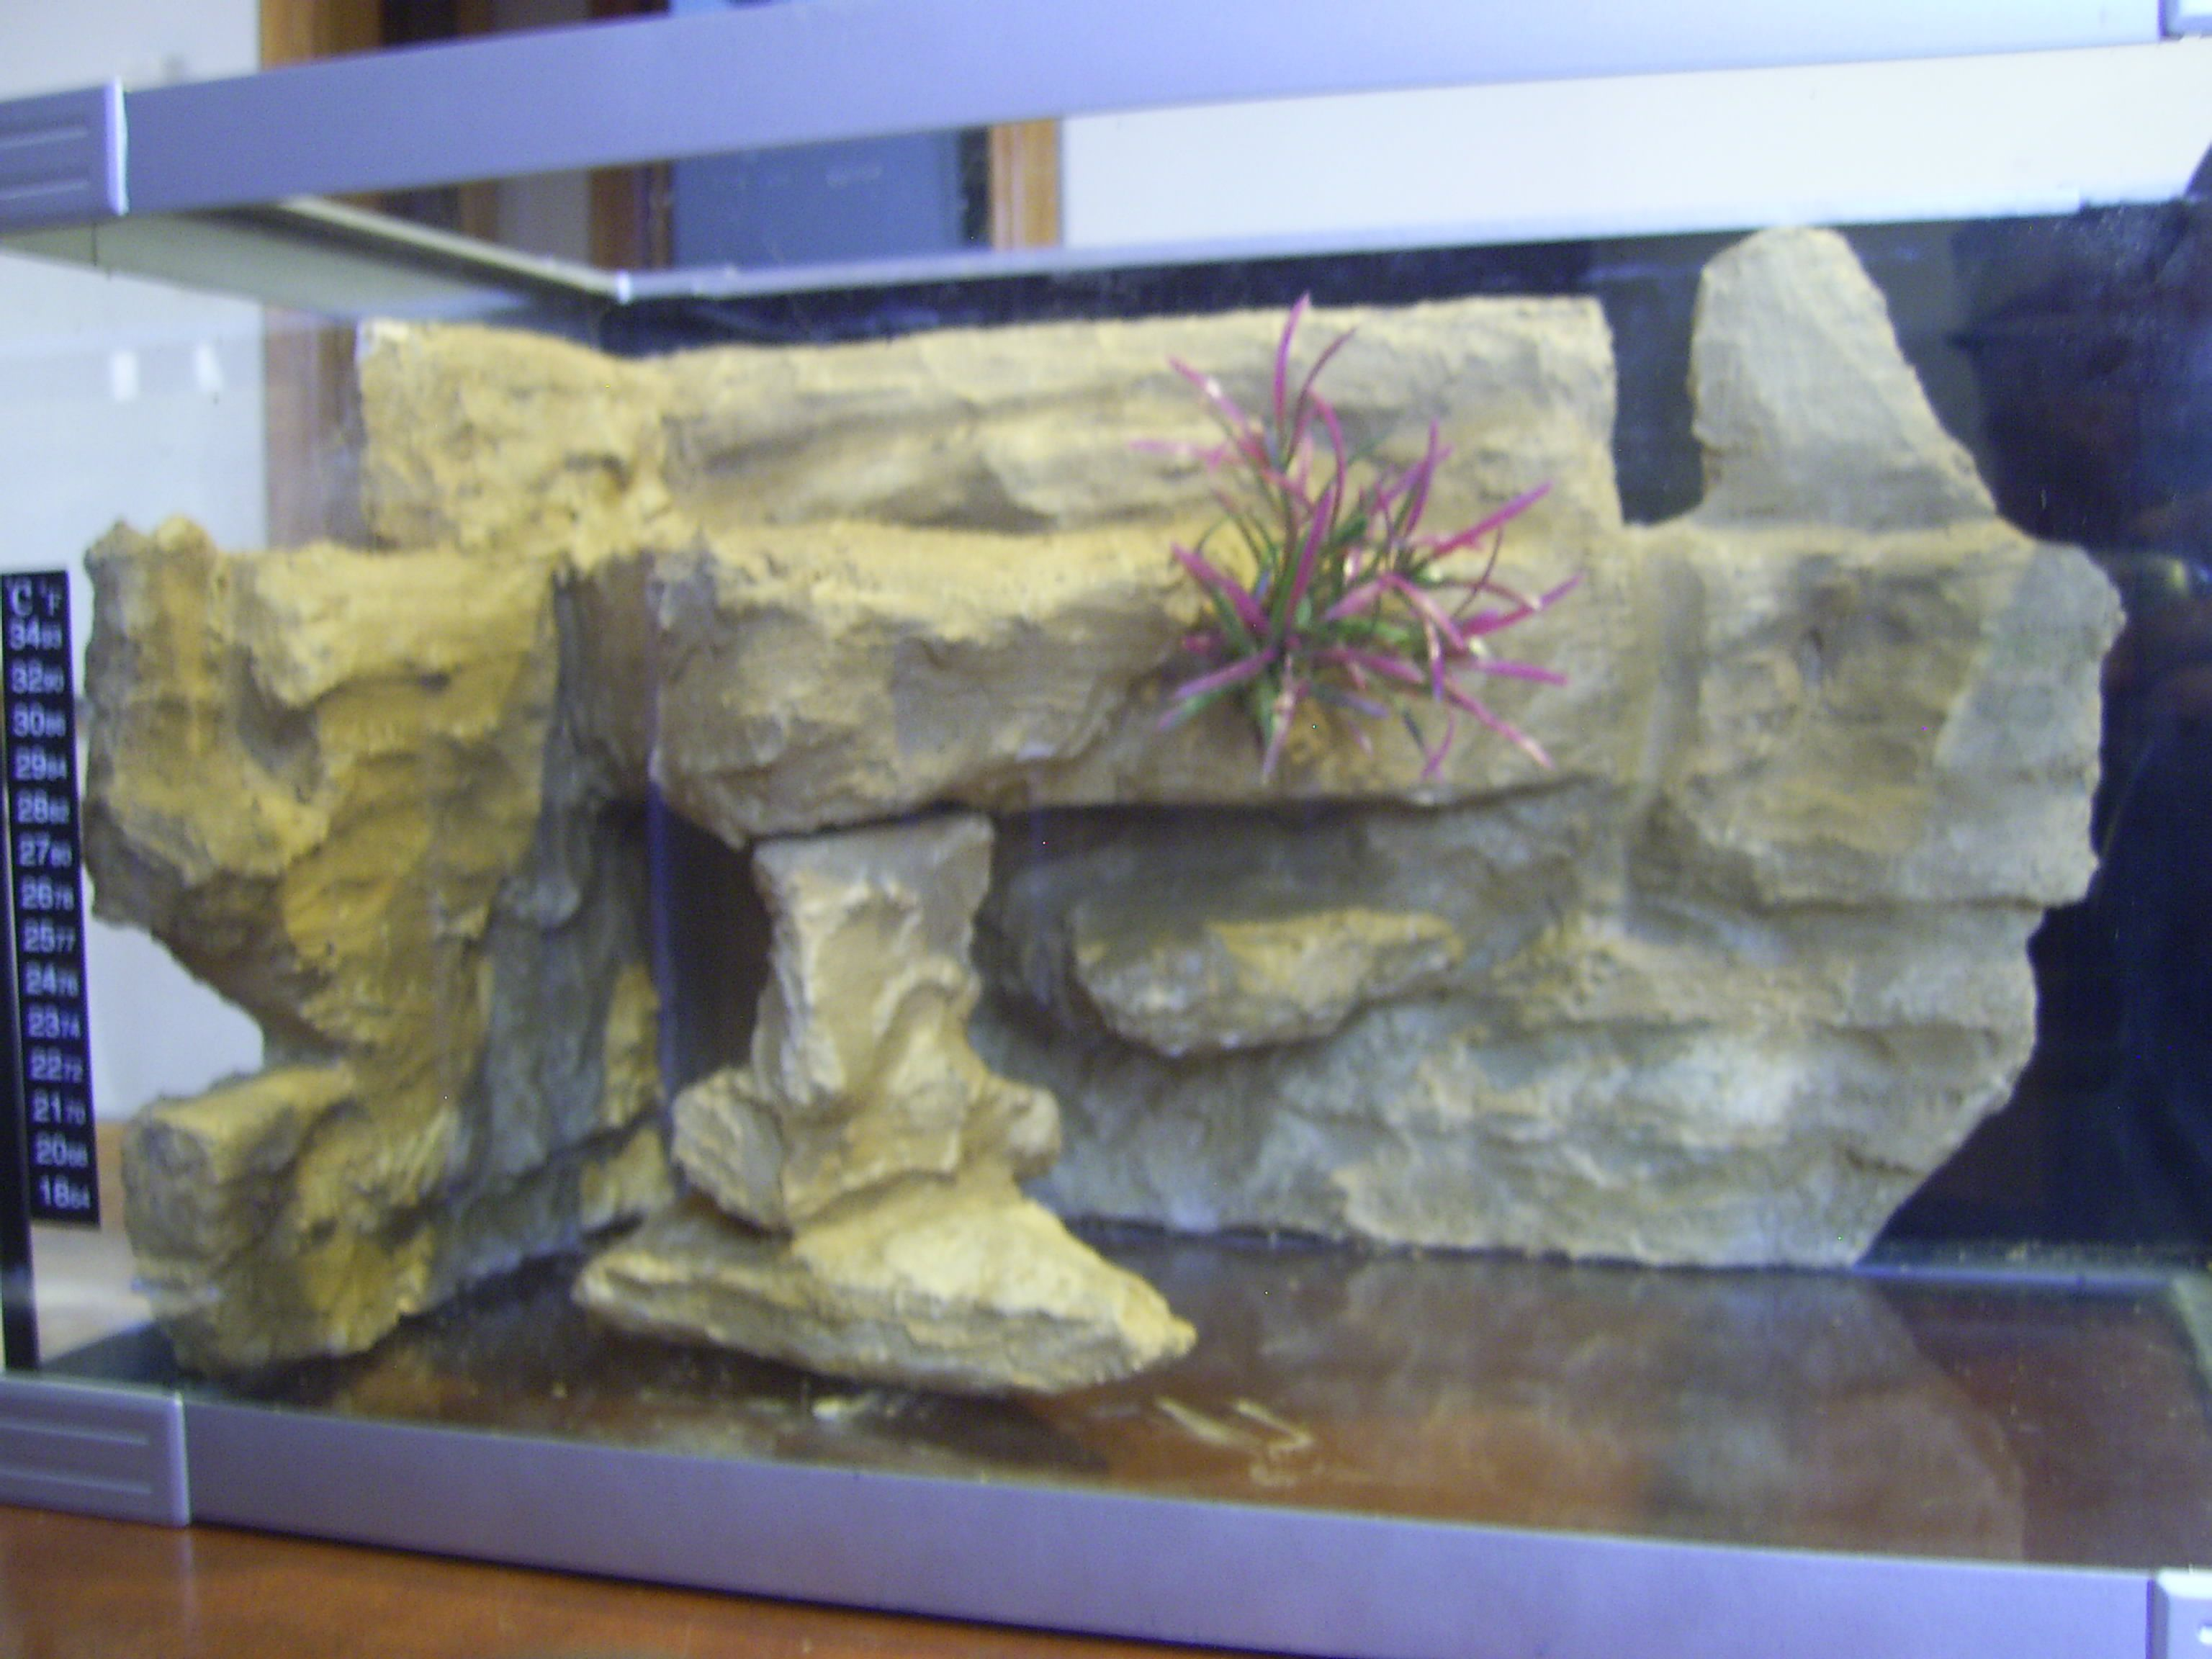 Diy Aquarium Background Aquarium Geophagus In The 125g